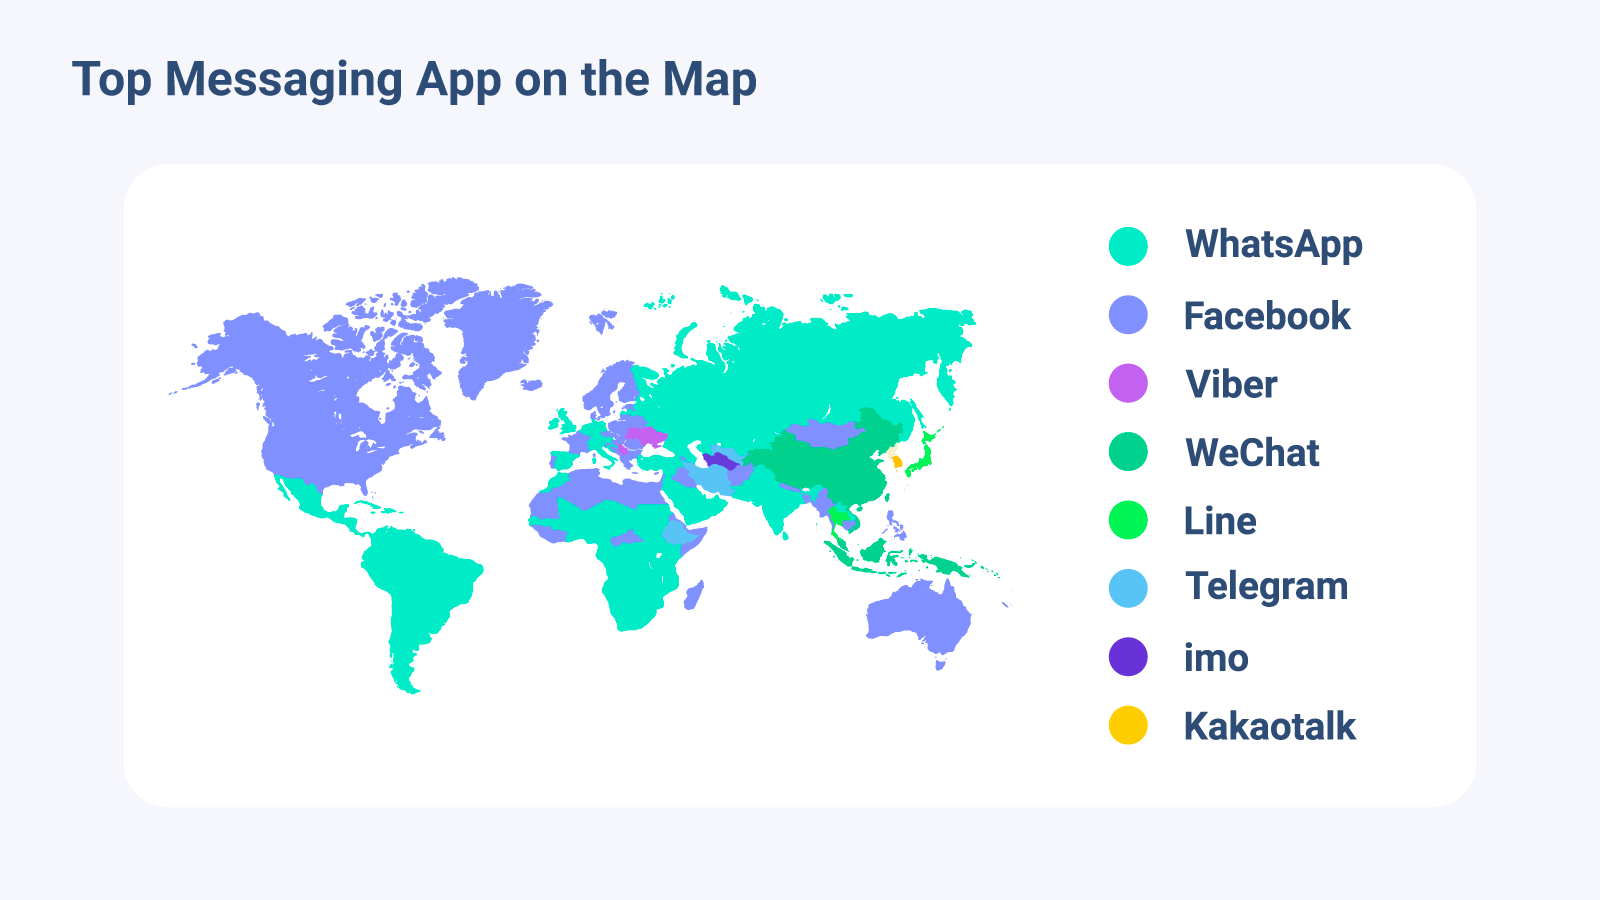 Map of the top messaging apps in the world